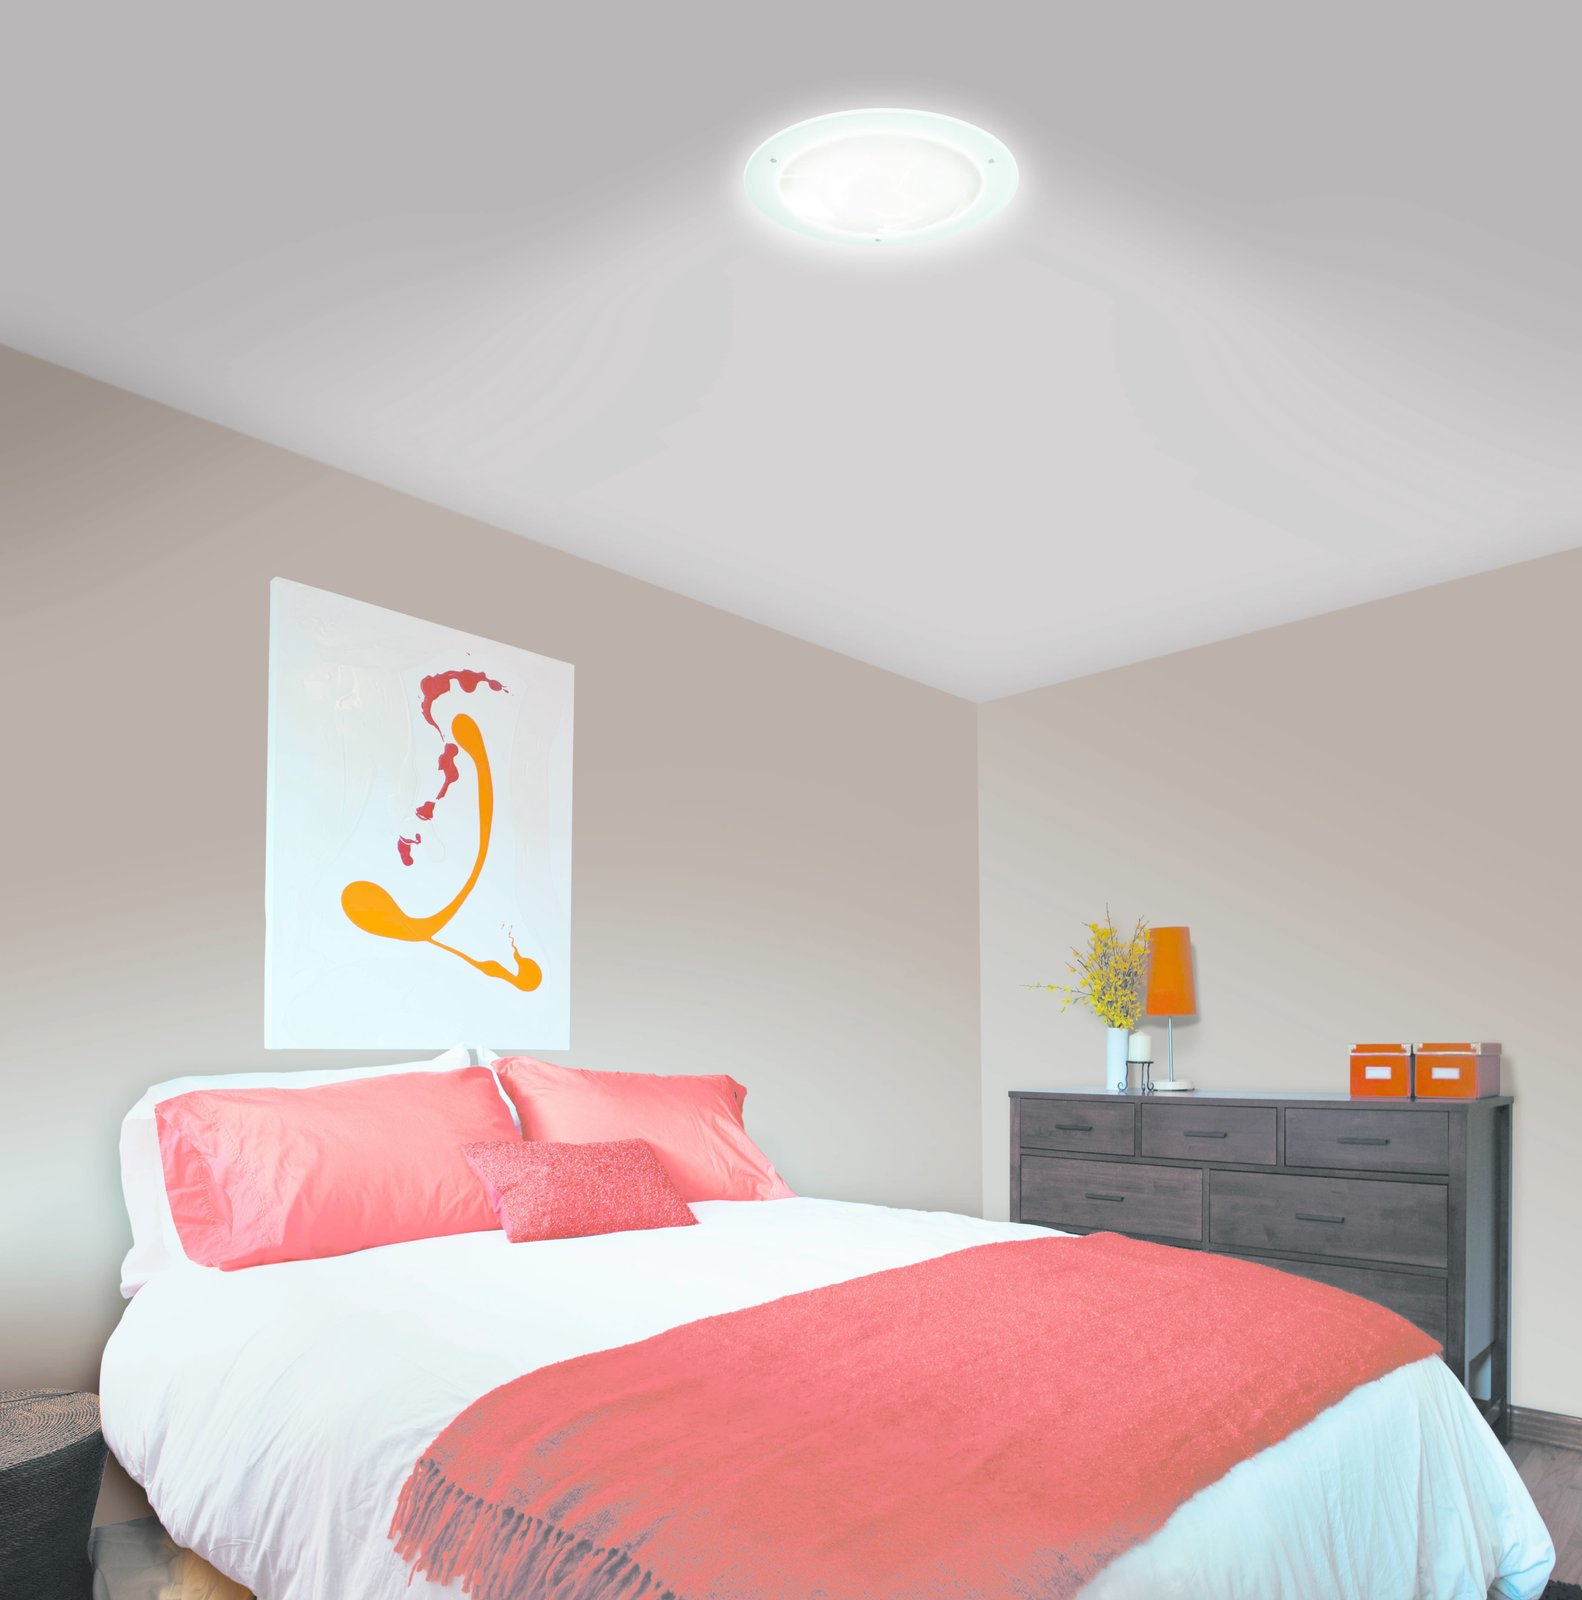 Less laborious than installing windows and more energy-efficient than turning on electric lights, tubular skylighting is a creative, sustainable design solution for brightening dim rooms.  Bedroom from See How Solatube Products Stream Natural Light Into Even the Darkest Corners of the Home